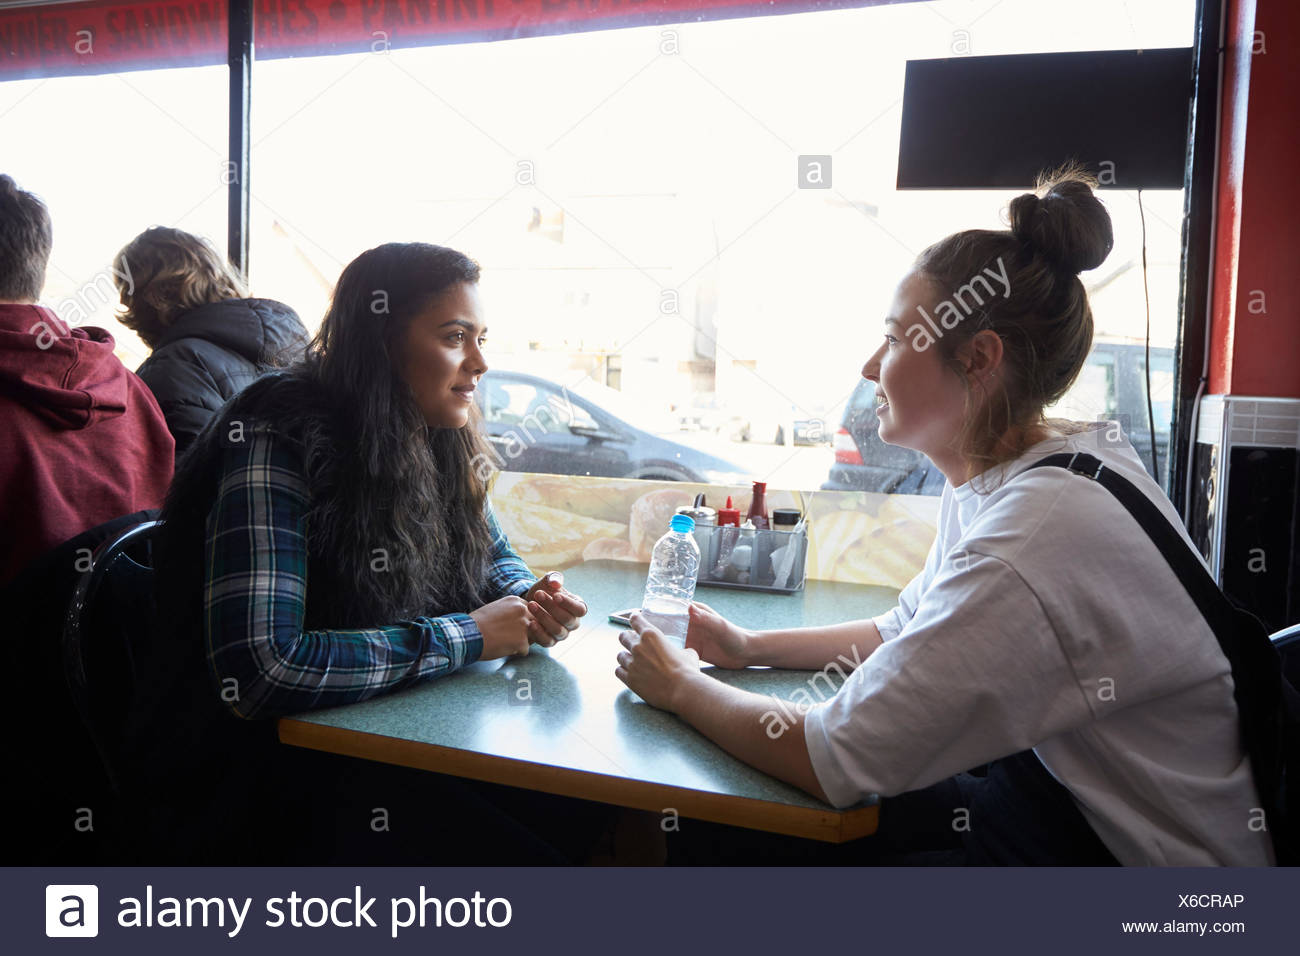 Two Female Students Eating Meal In Café - Stock Image